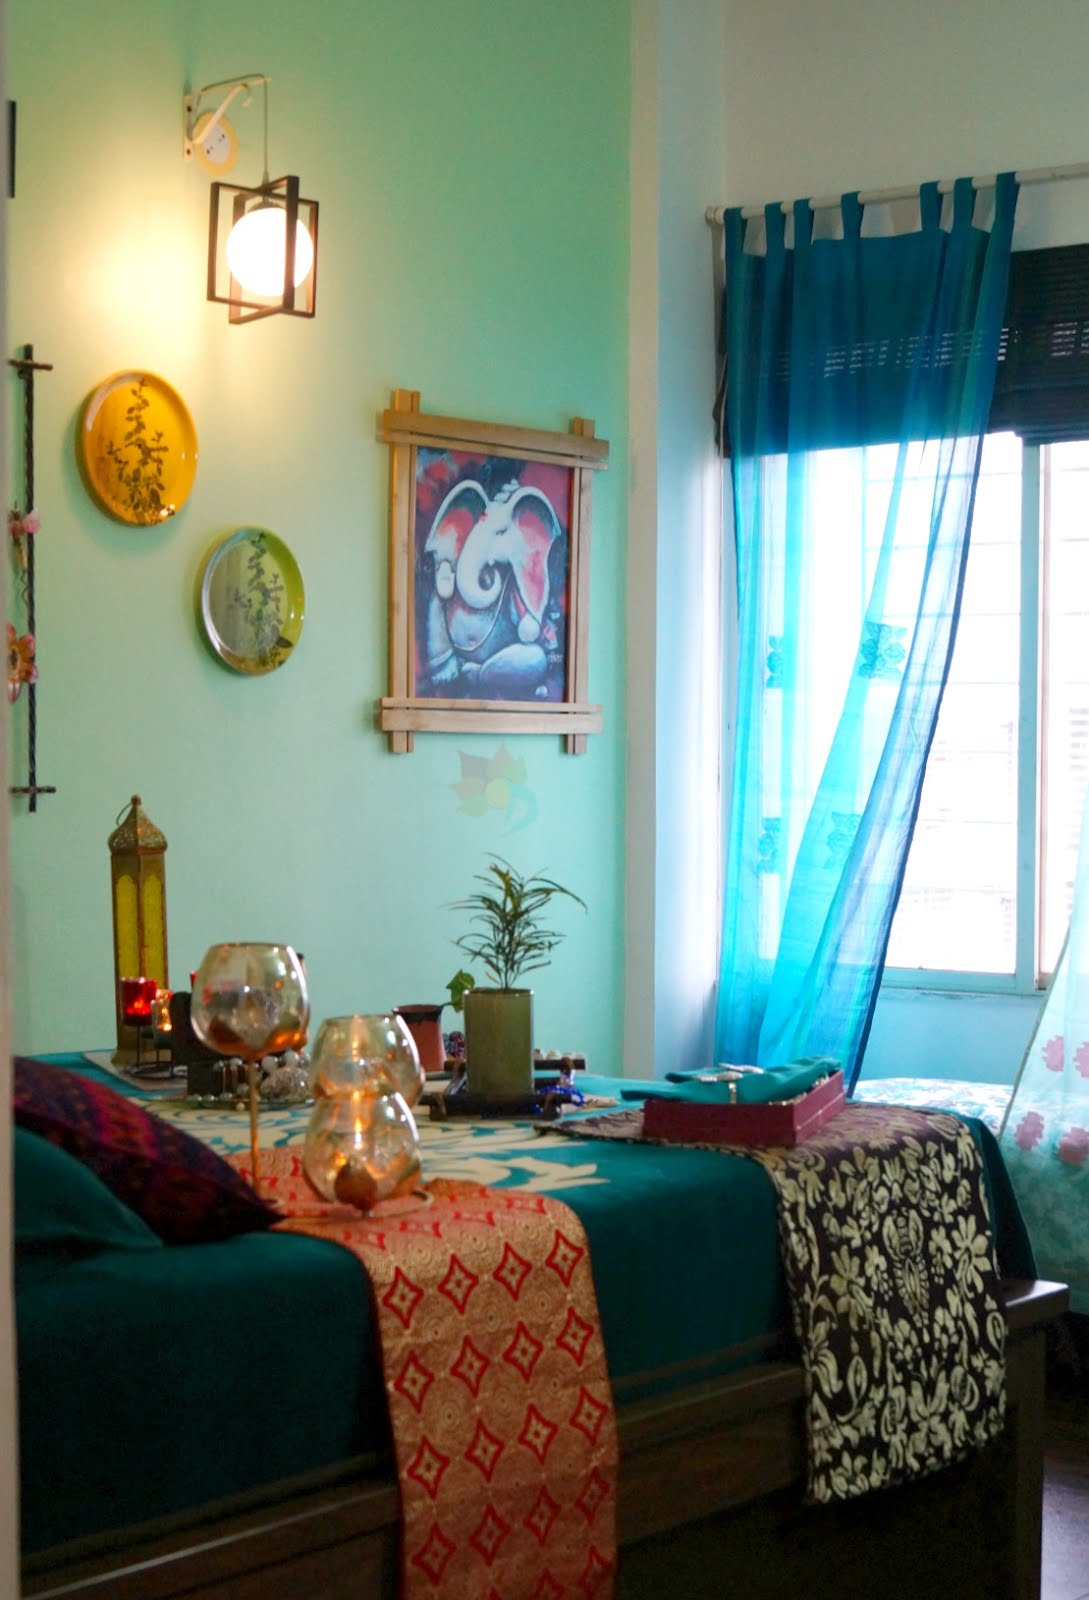 Design decor disha an indian design decor blog home tour anushikha dwivedi - Decorative items for home ...